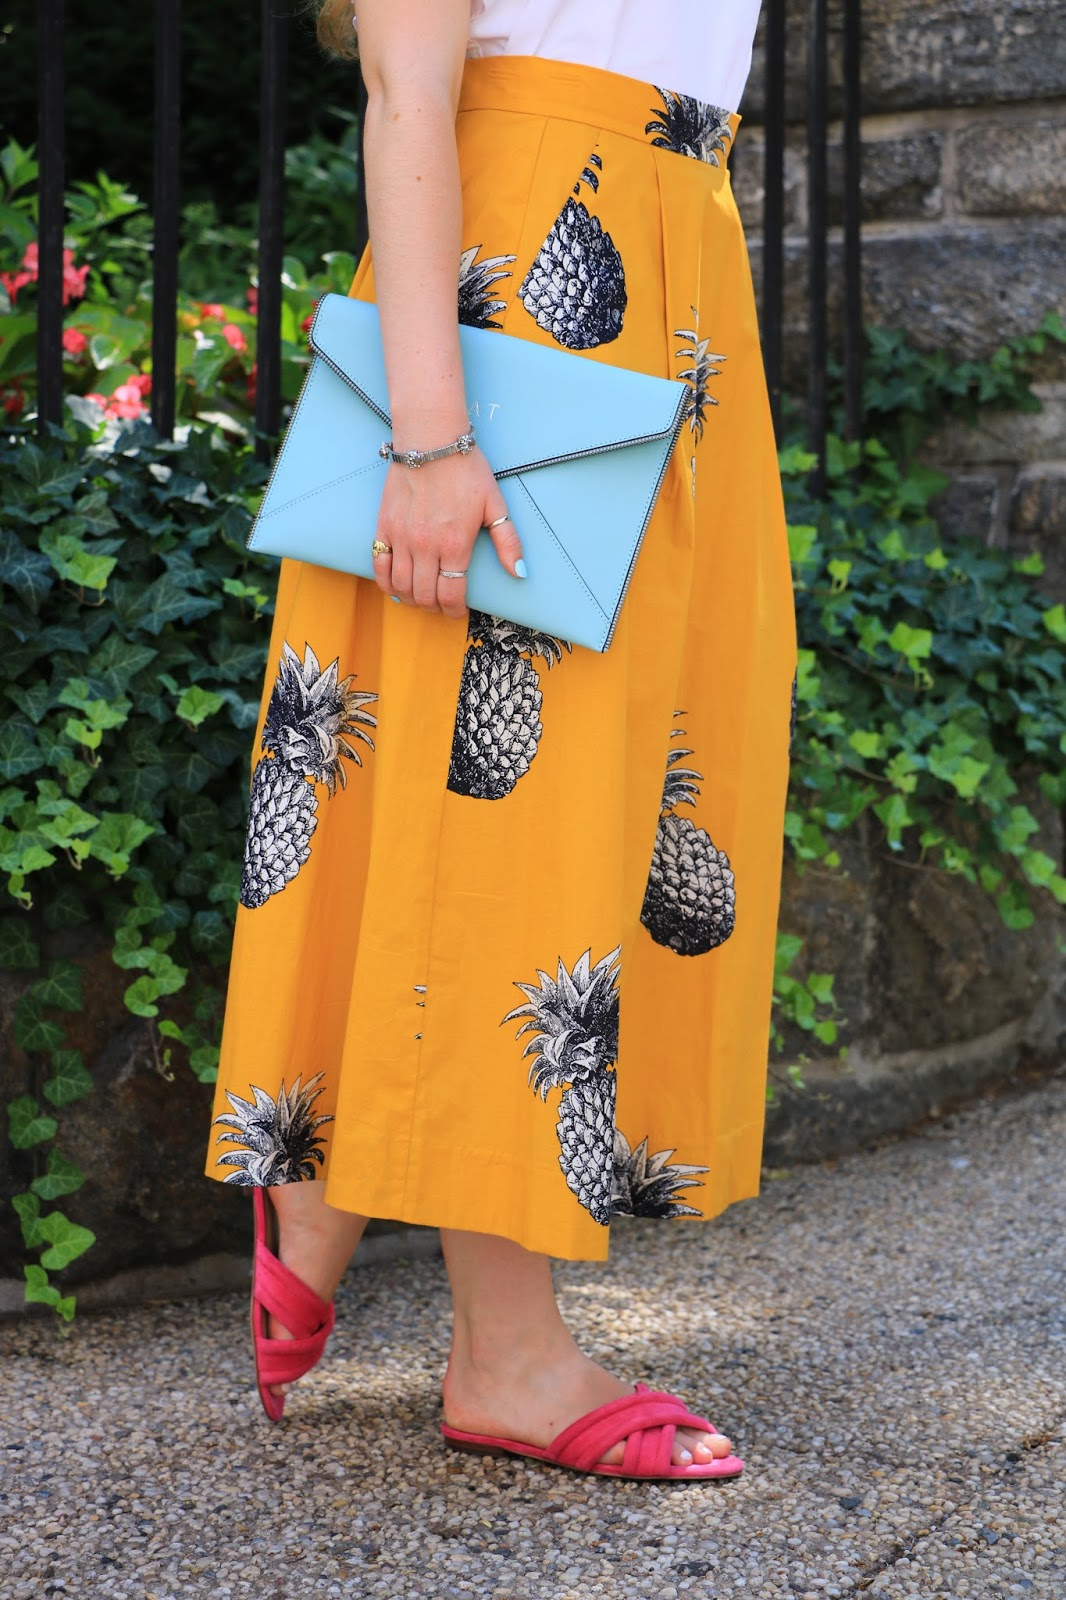 Fashion blogger Kathleen Harper wearing a pineapple skirt with pink slides